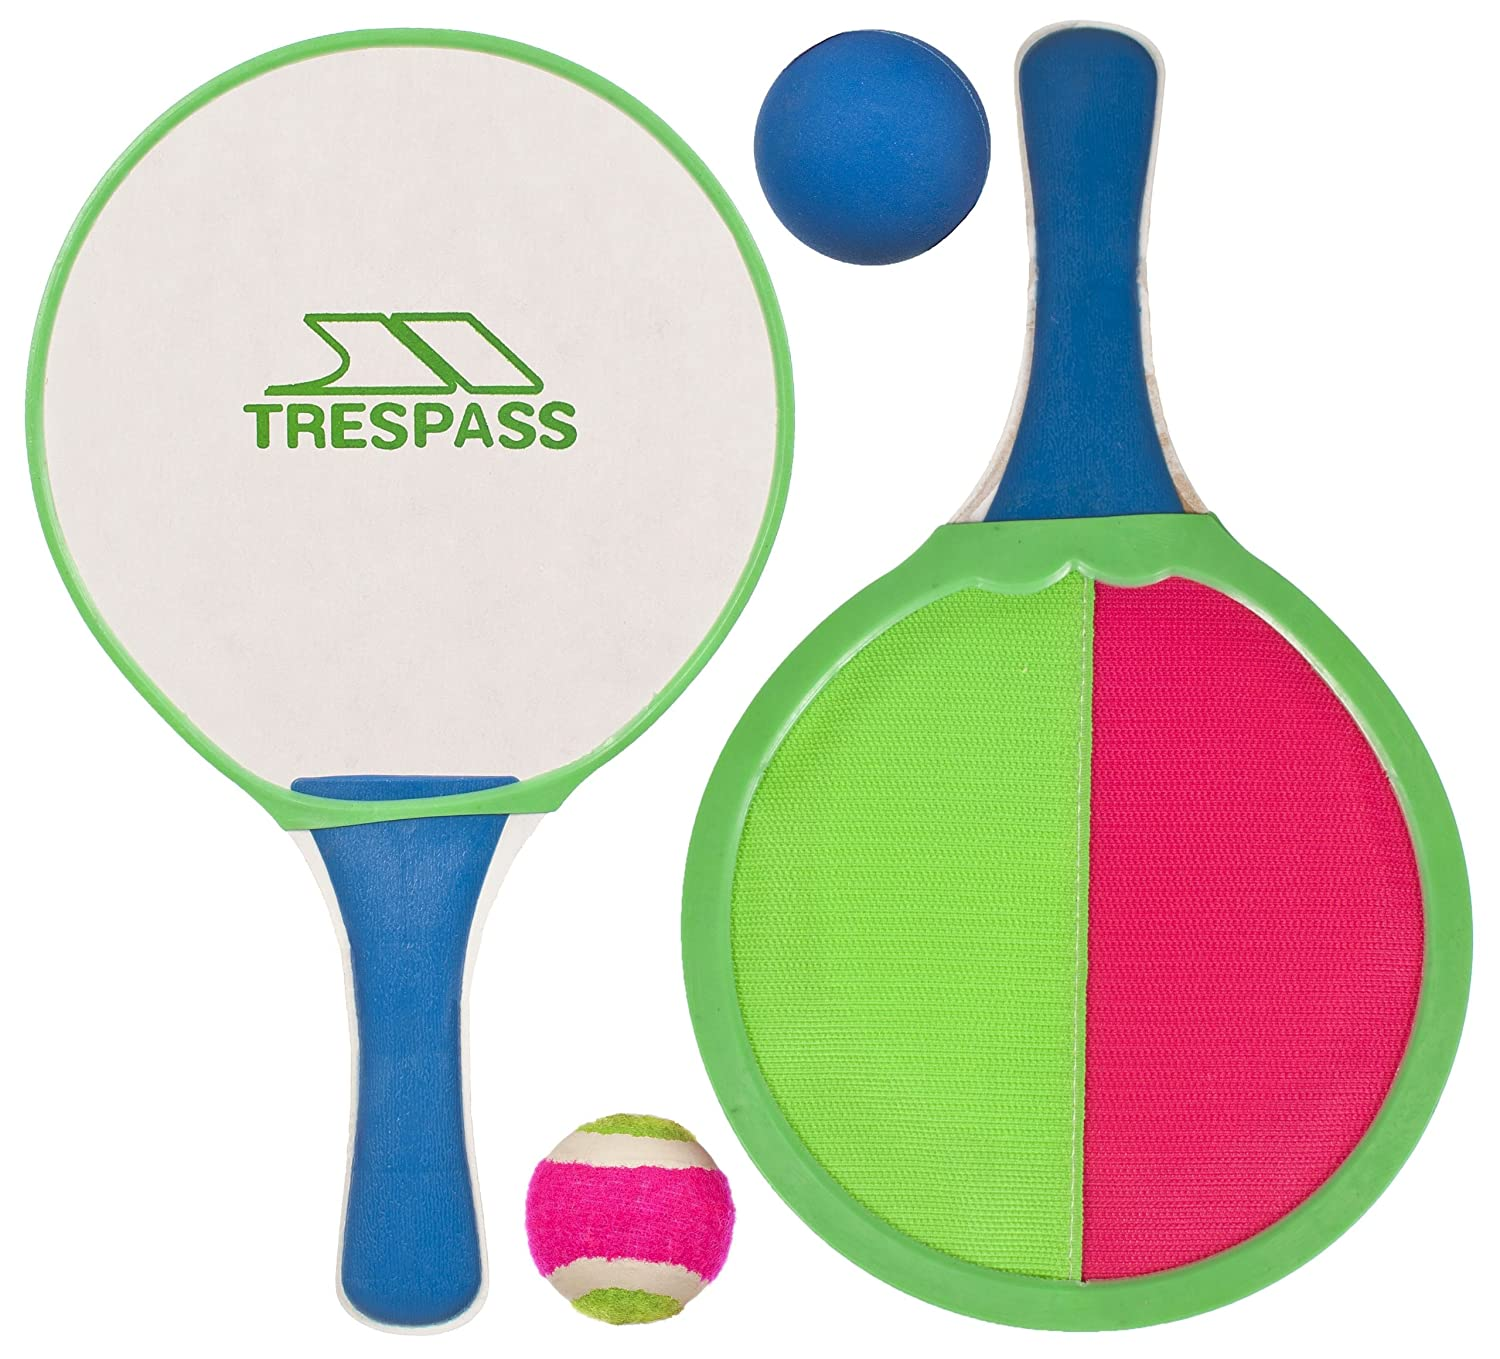 Trespass Prodigy, Multi, Paddle Bat and Ball Toy, Multicolour UUACMIG20022_MULEACH